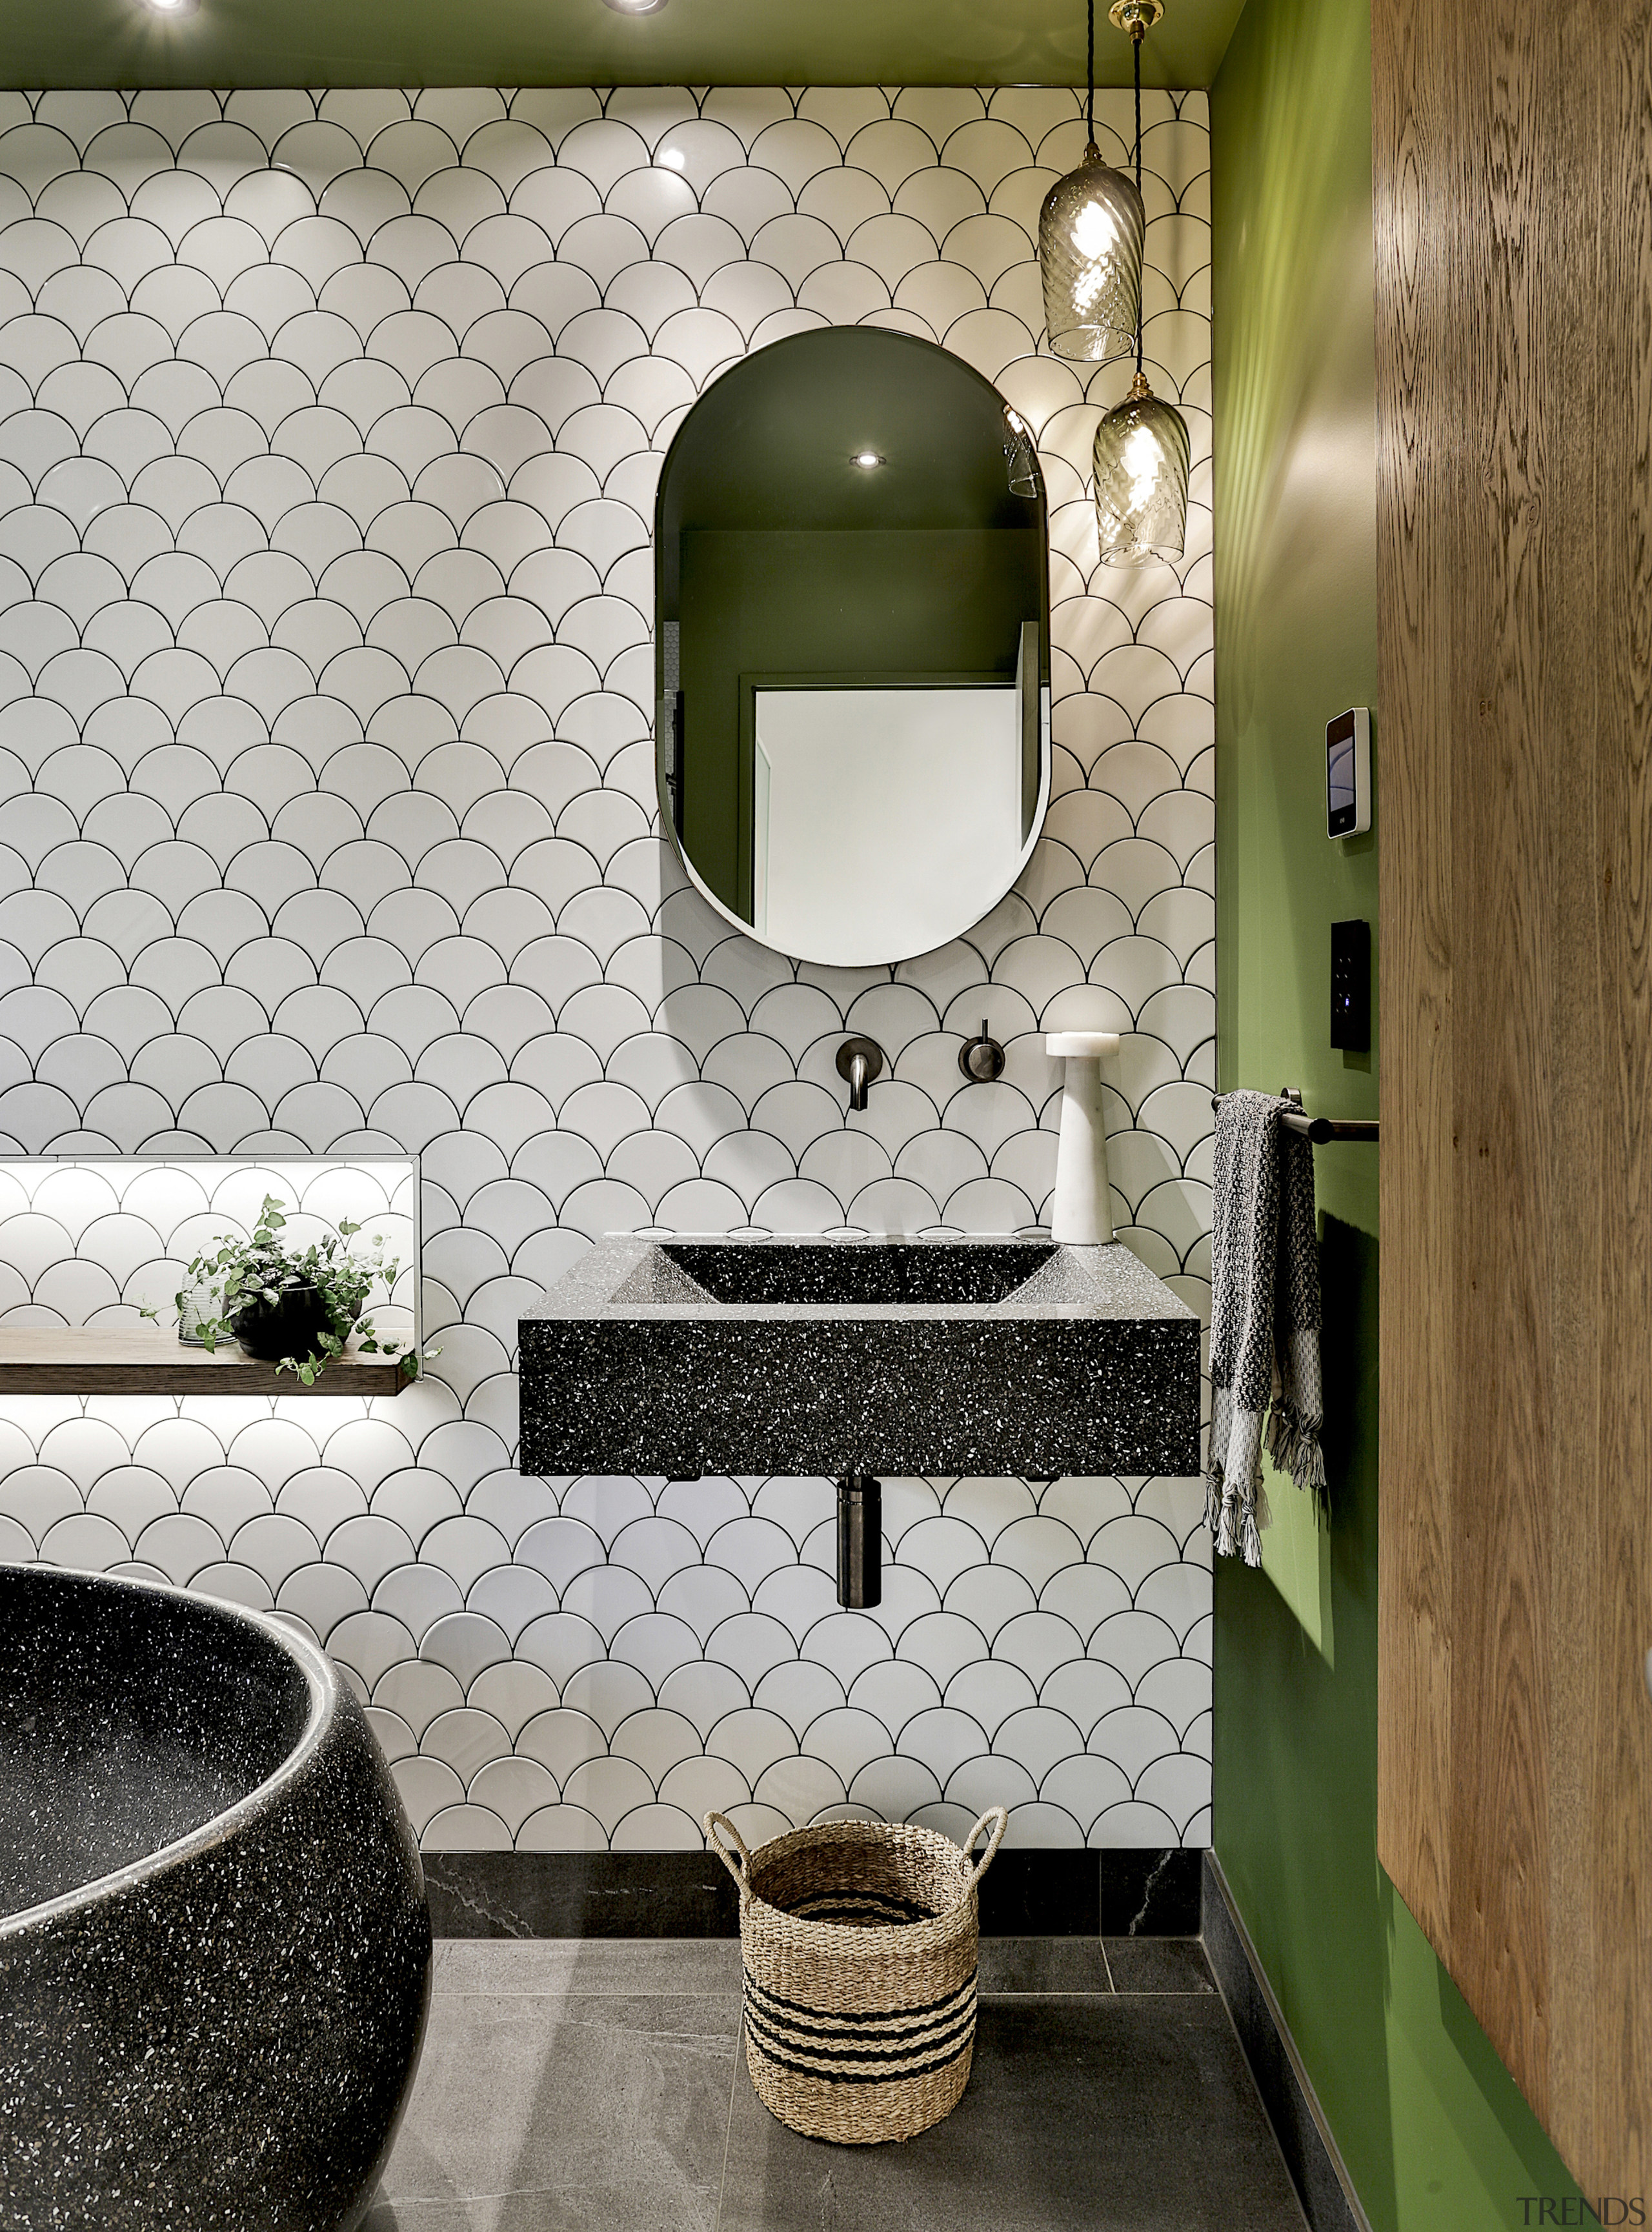 Earthy tones are continued through into the charcoal-coloured, architecture, bathroom, building, ceramic, countertop, floor, flooring, furniture, green, house, interior design, marble, material property, plumbing fixture, property, restroom, room, sink, tile, toilet, wall, gray, brown